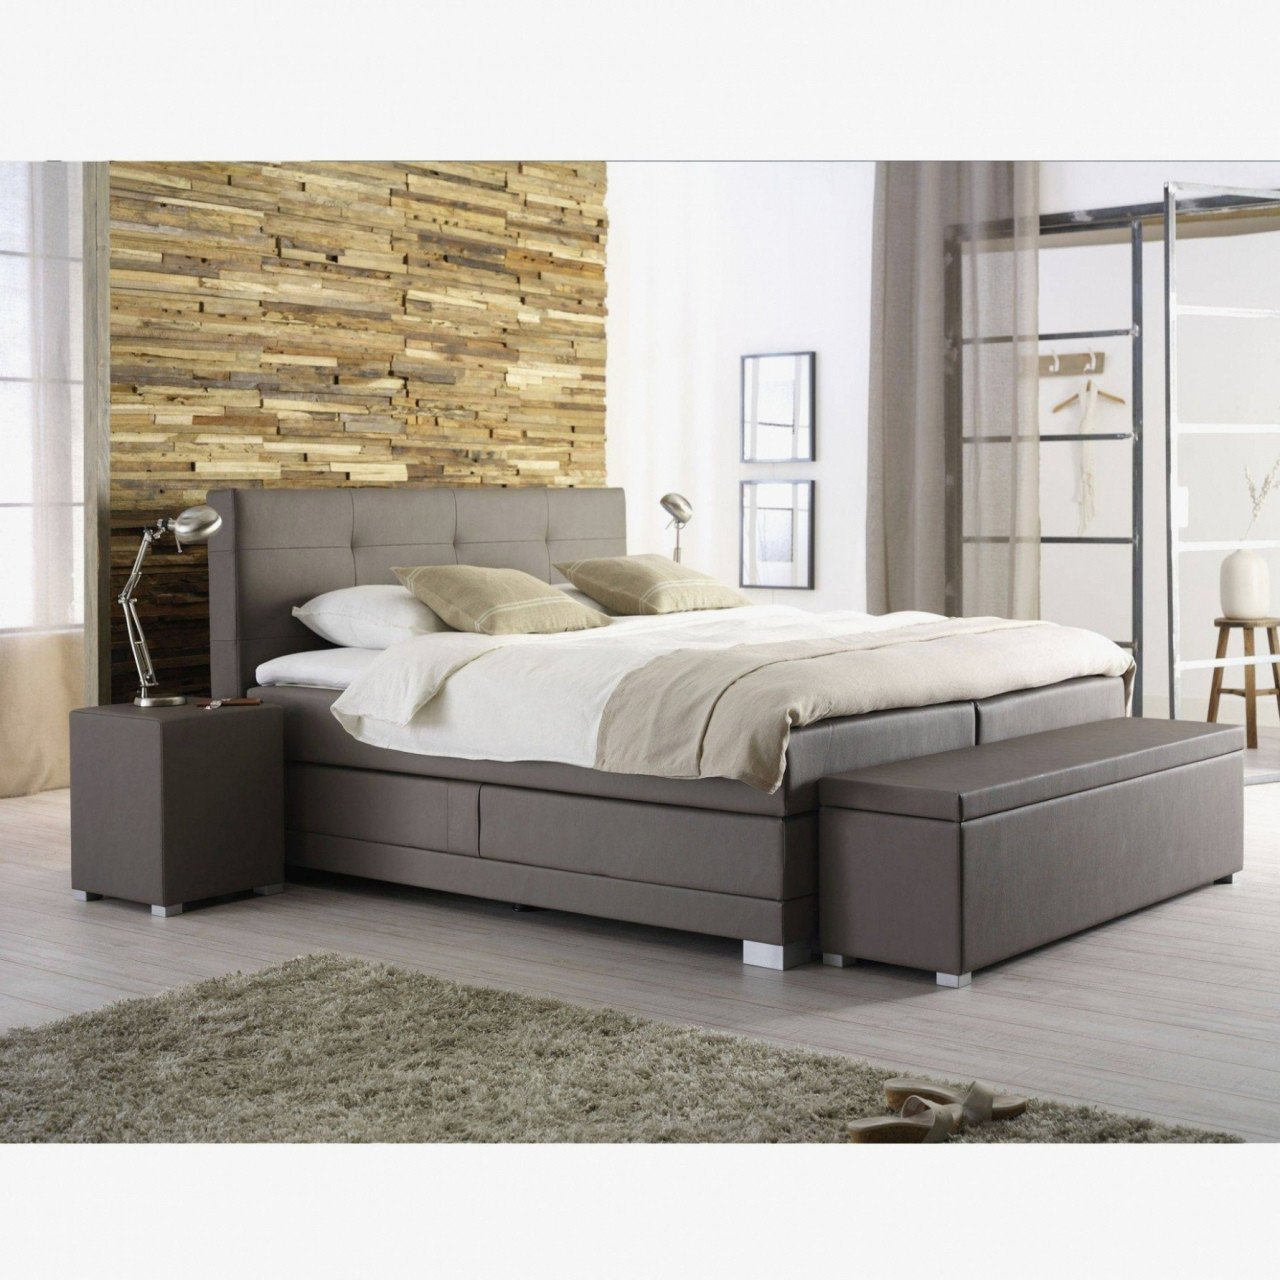 Full Size Bedroom Set Luxury Drawers Under Bed — Procura Home Blog